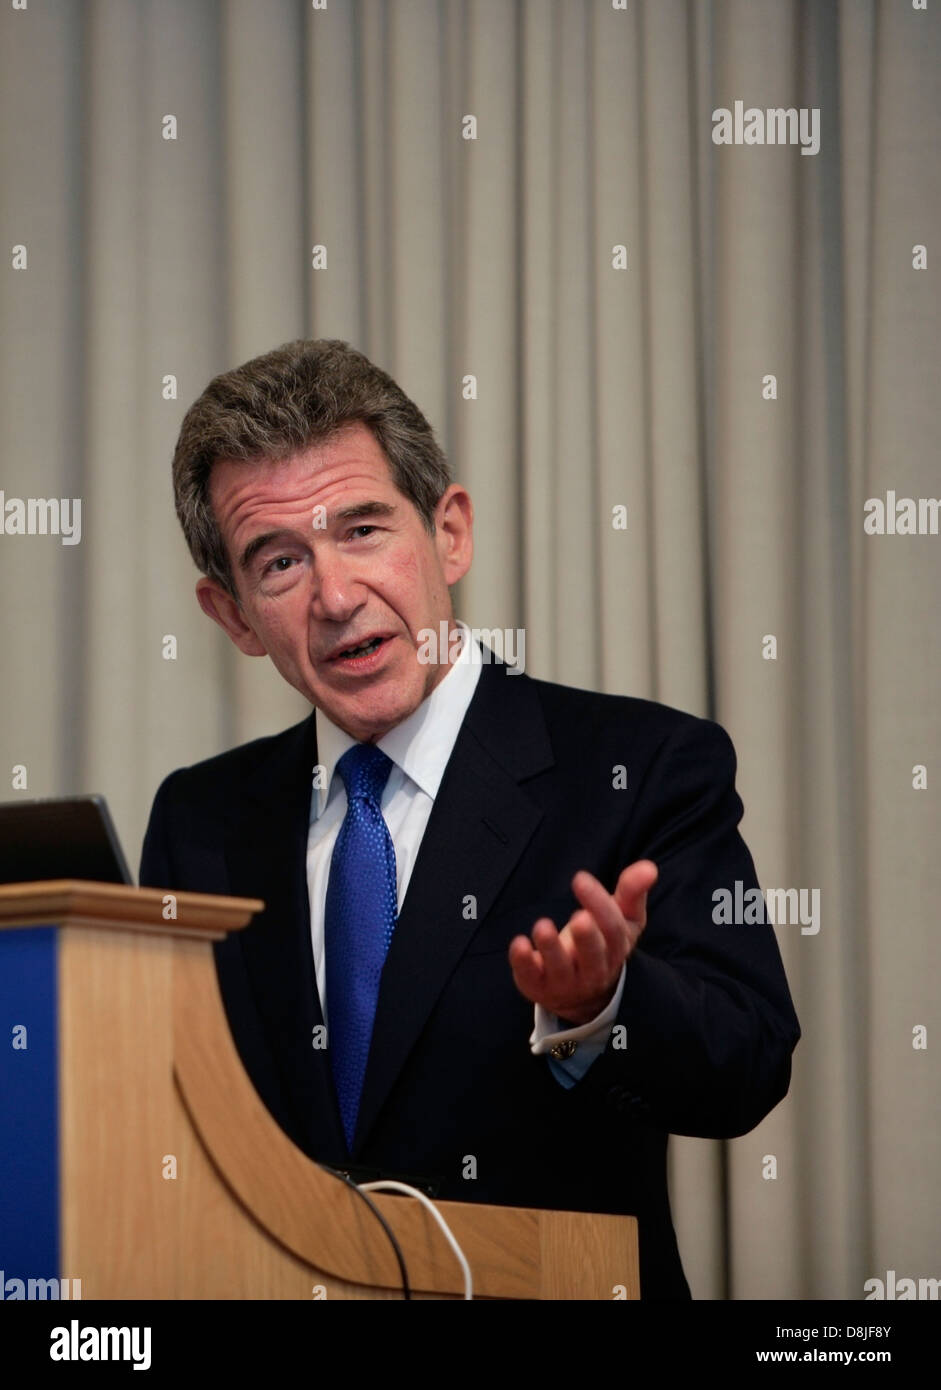 Lord John Browne, former Chief Executive of BP. - Stock Image